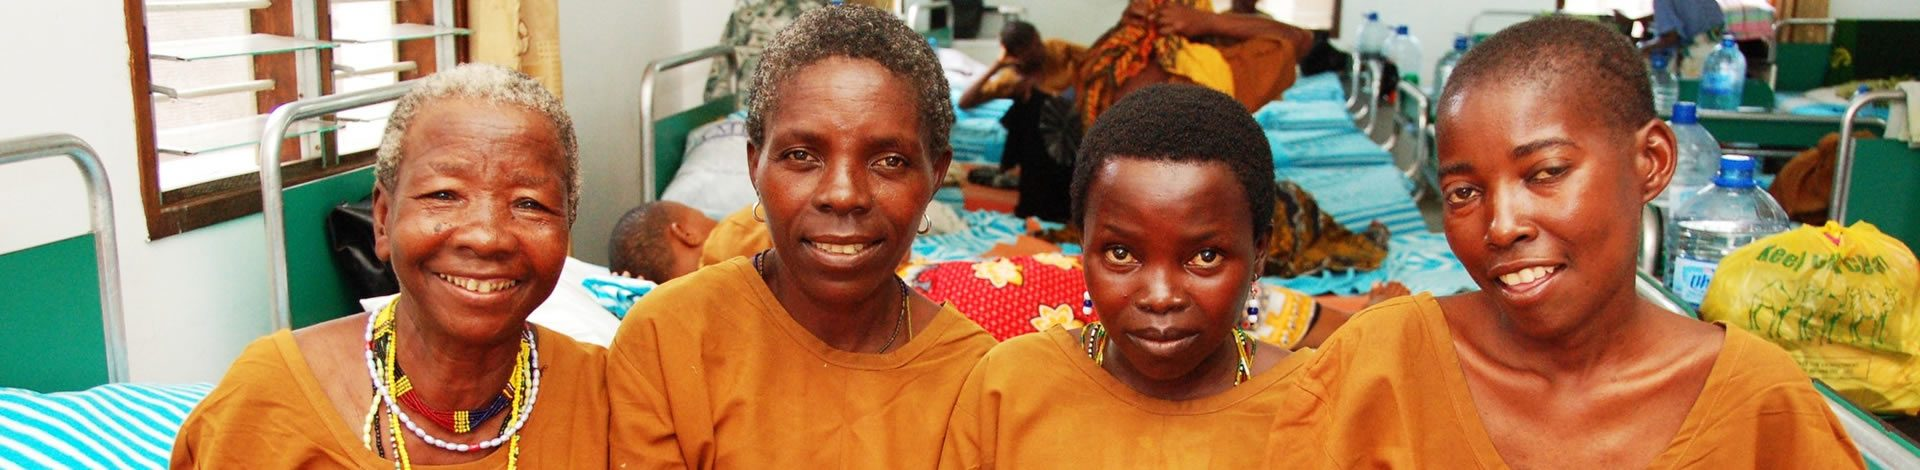 4 women sit on a hospital bed at CCBRT after fistula surgery.